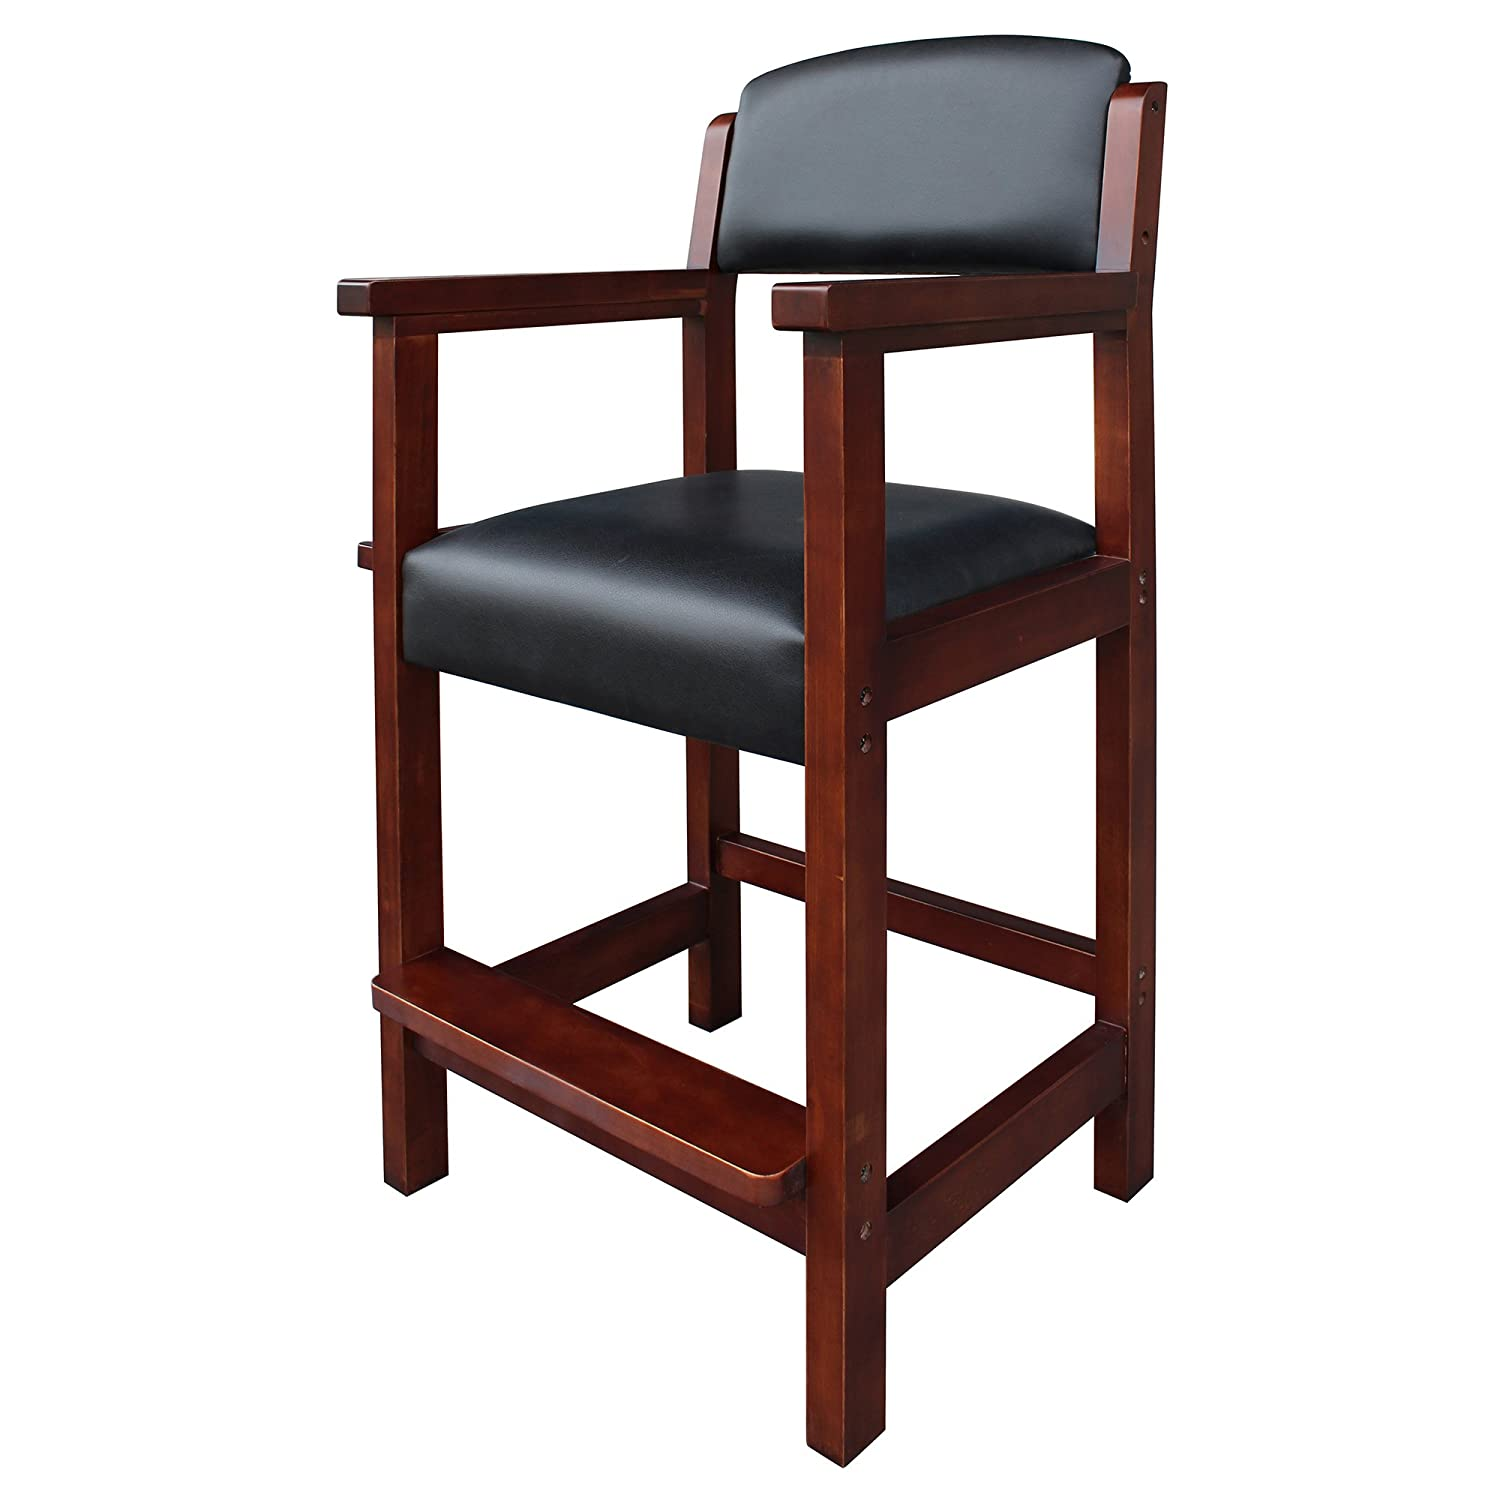 Amazon.com  Hathaway Cambridge Spectator Chair Antique Walnut  Sports u0026 Outdoors  sc 1 st  Amazon.com & Amazon.com : Hathaway Cambridge Spectator Chair Antique Walnut ...